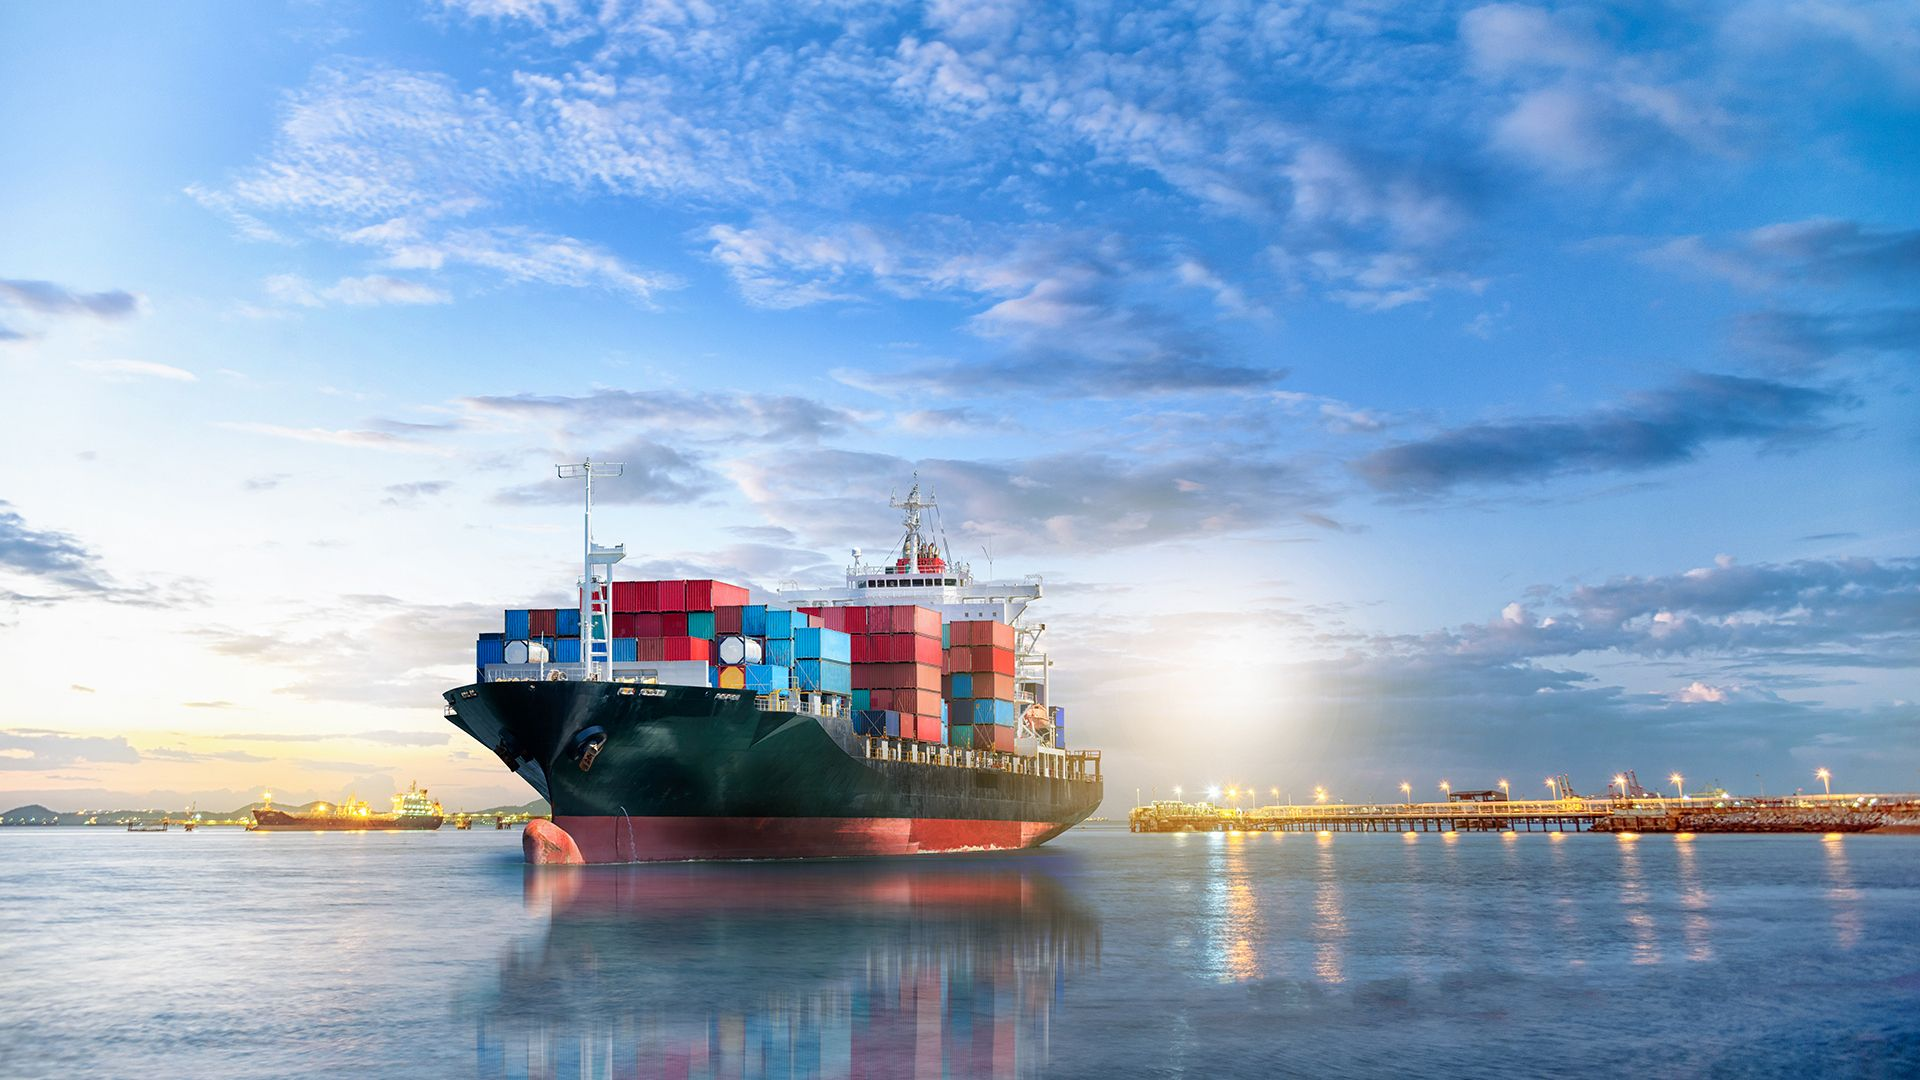 Hydrogen gas solutions for shipping industry - Shipbuilding & Water Transport - Maritime